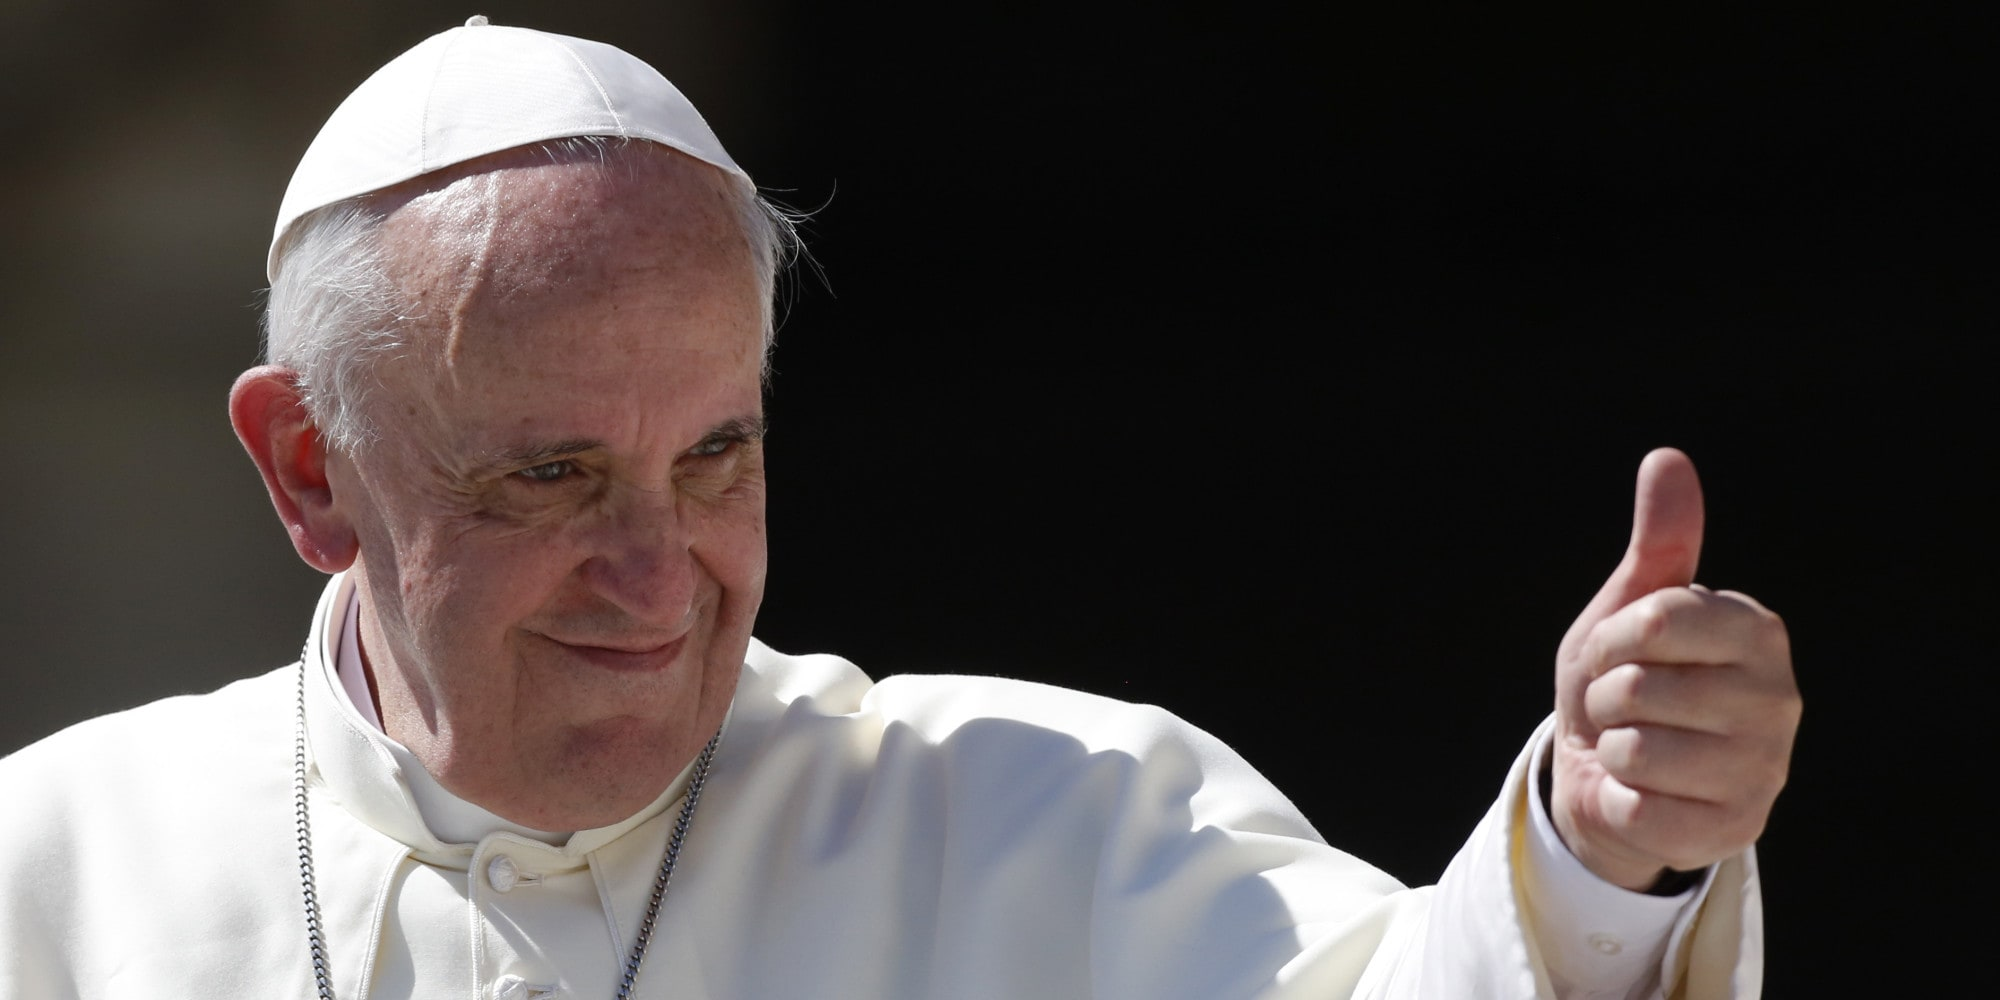 Popes Francis hd wallpaper pack